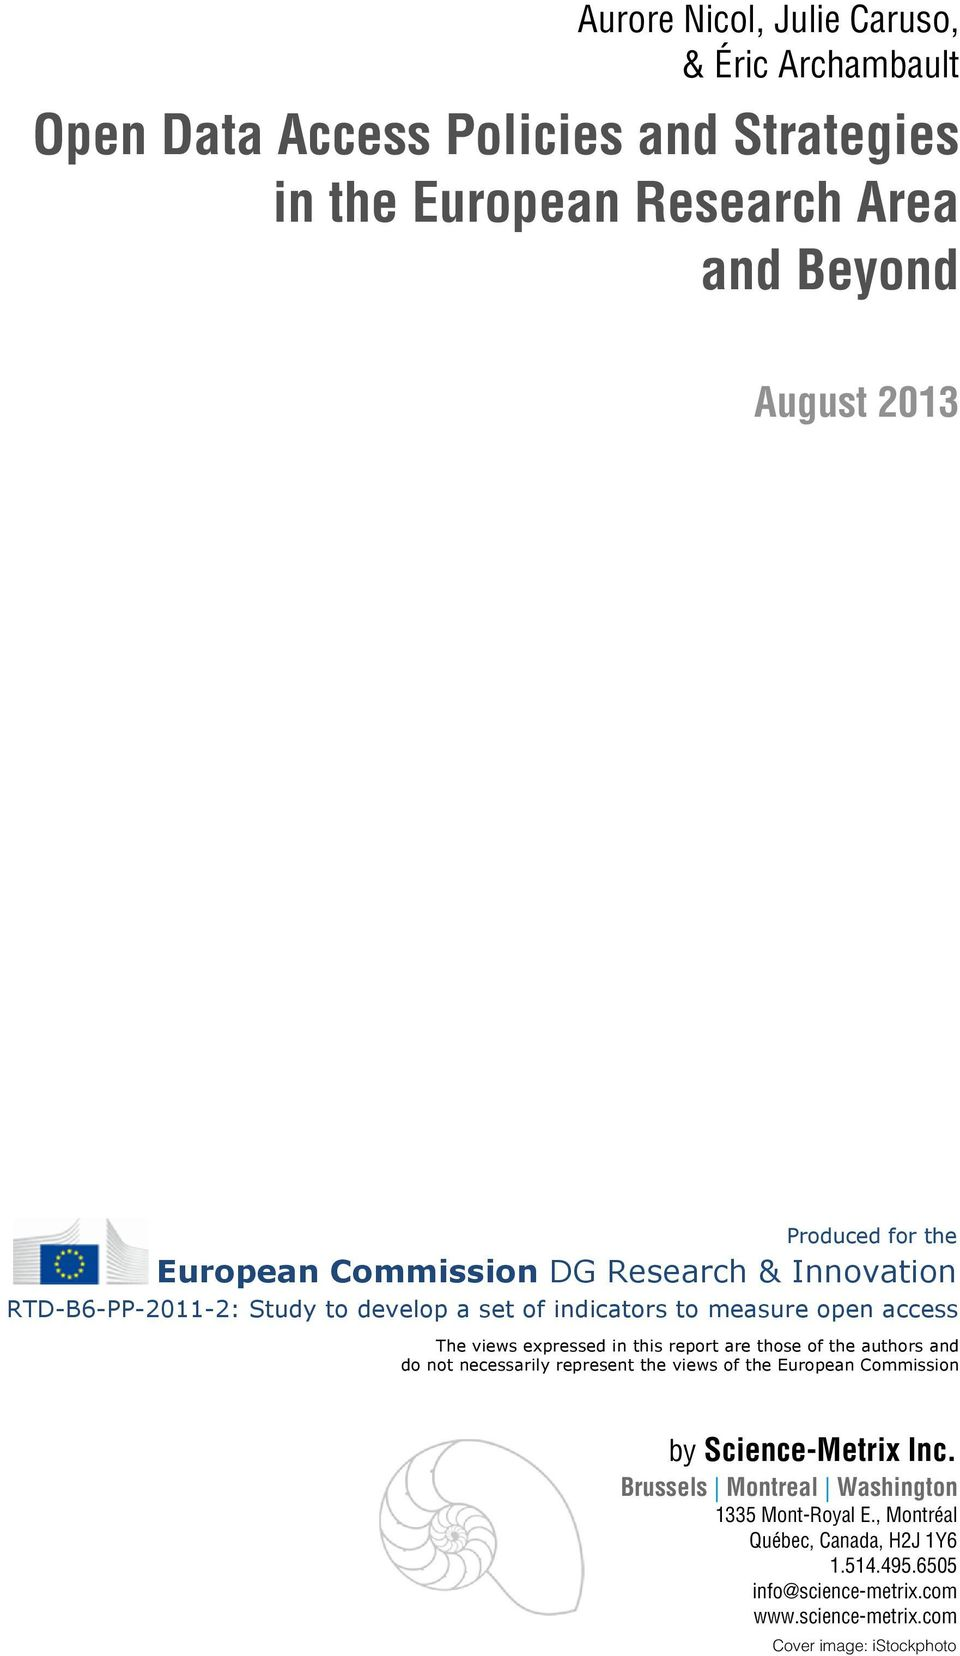 authors and do not necessarily represent the views of the European Commission by Science-Metrix Inc.